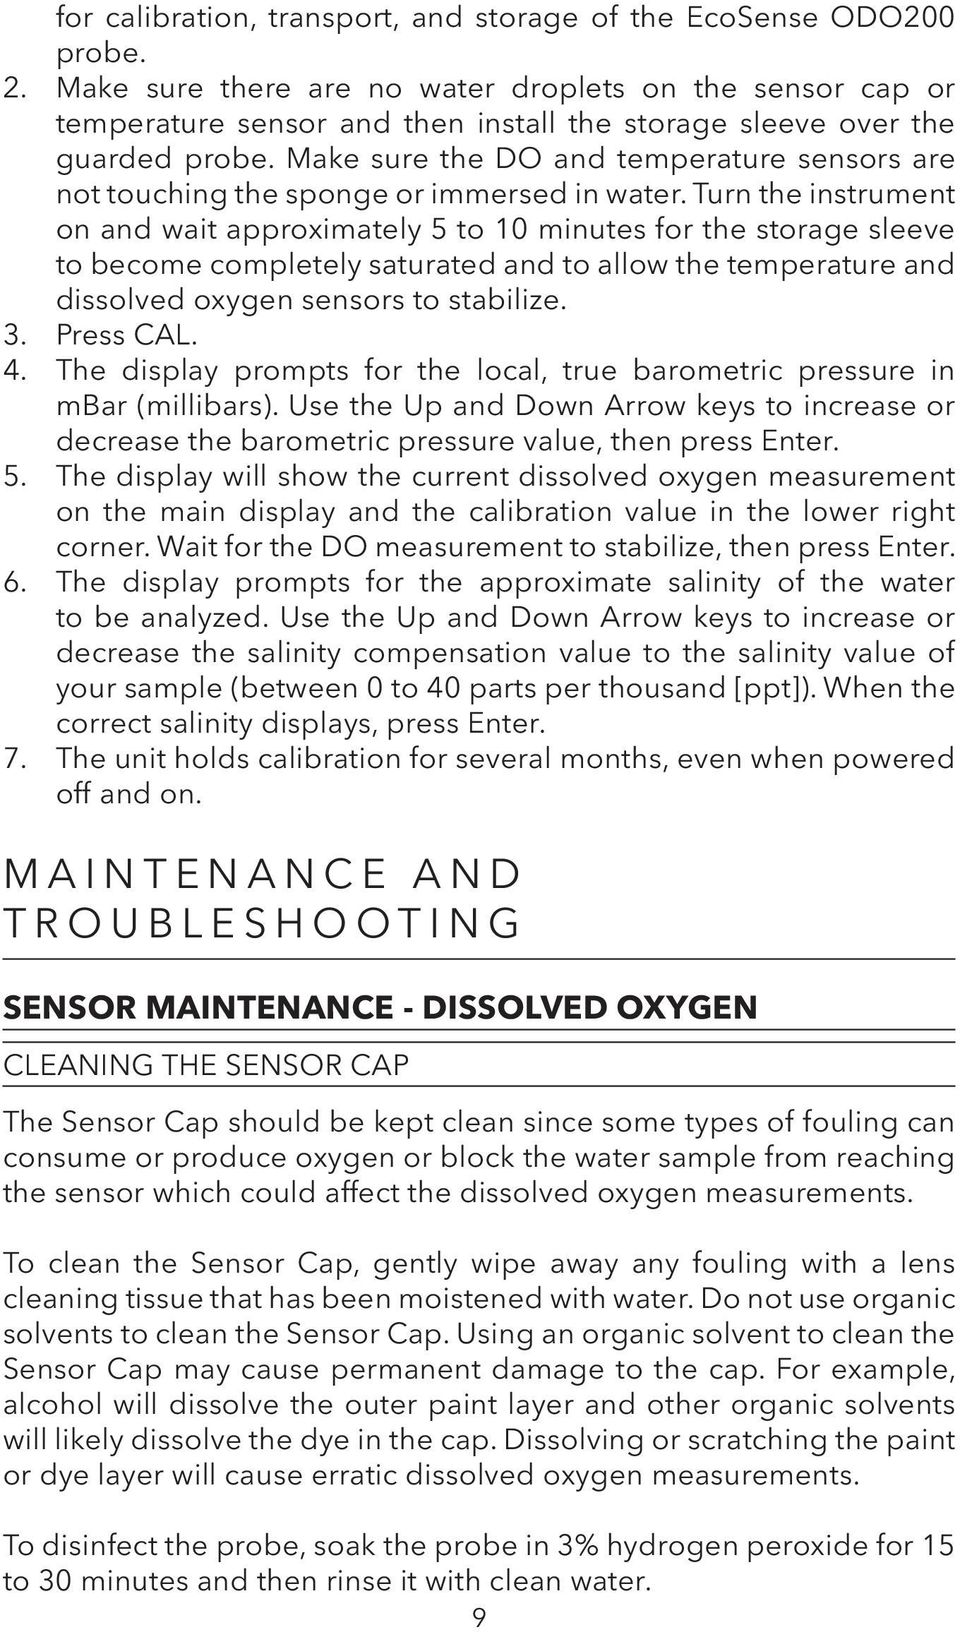 Make sure the DO and temperature sensors are not touching the sponge or immersed in water.